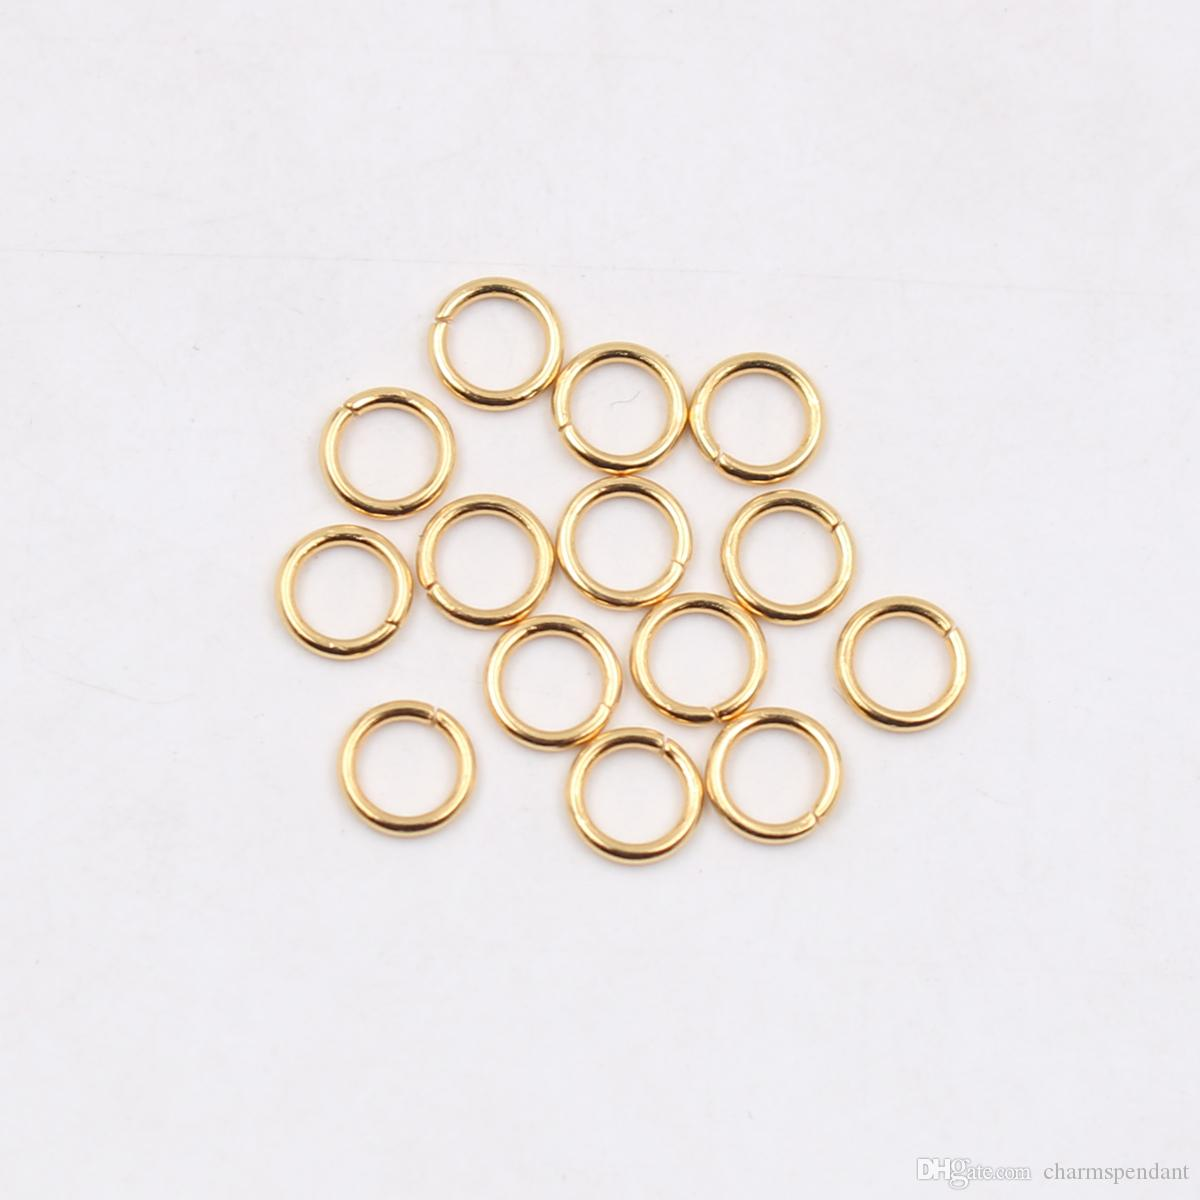 wholesale Stainless steel Open Jump Ring Split Ring 5x1mm / 6*1mm / 7*1mm / 8*1mm Jewelry Finding Silver Polished fashion DIY Gold